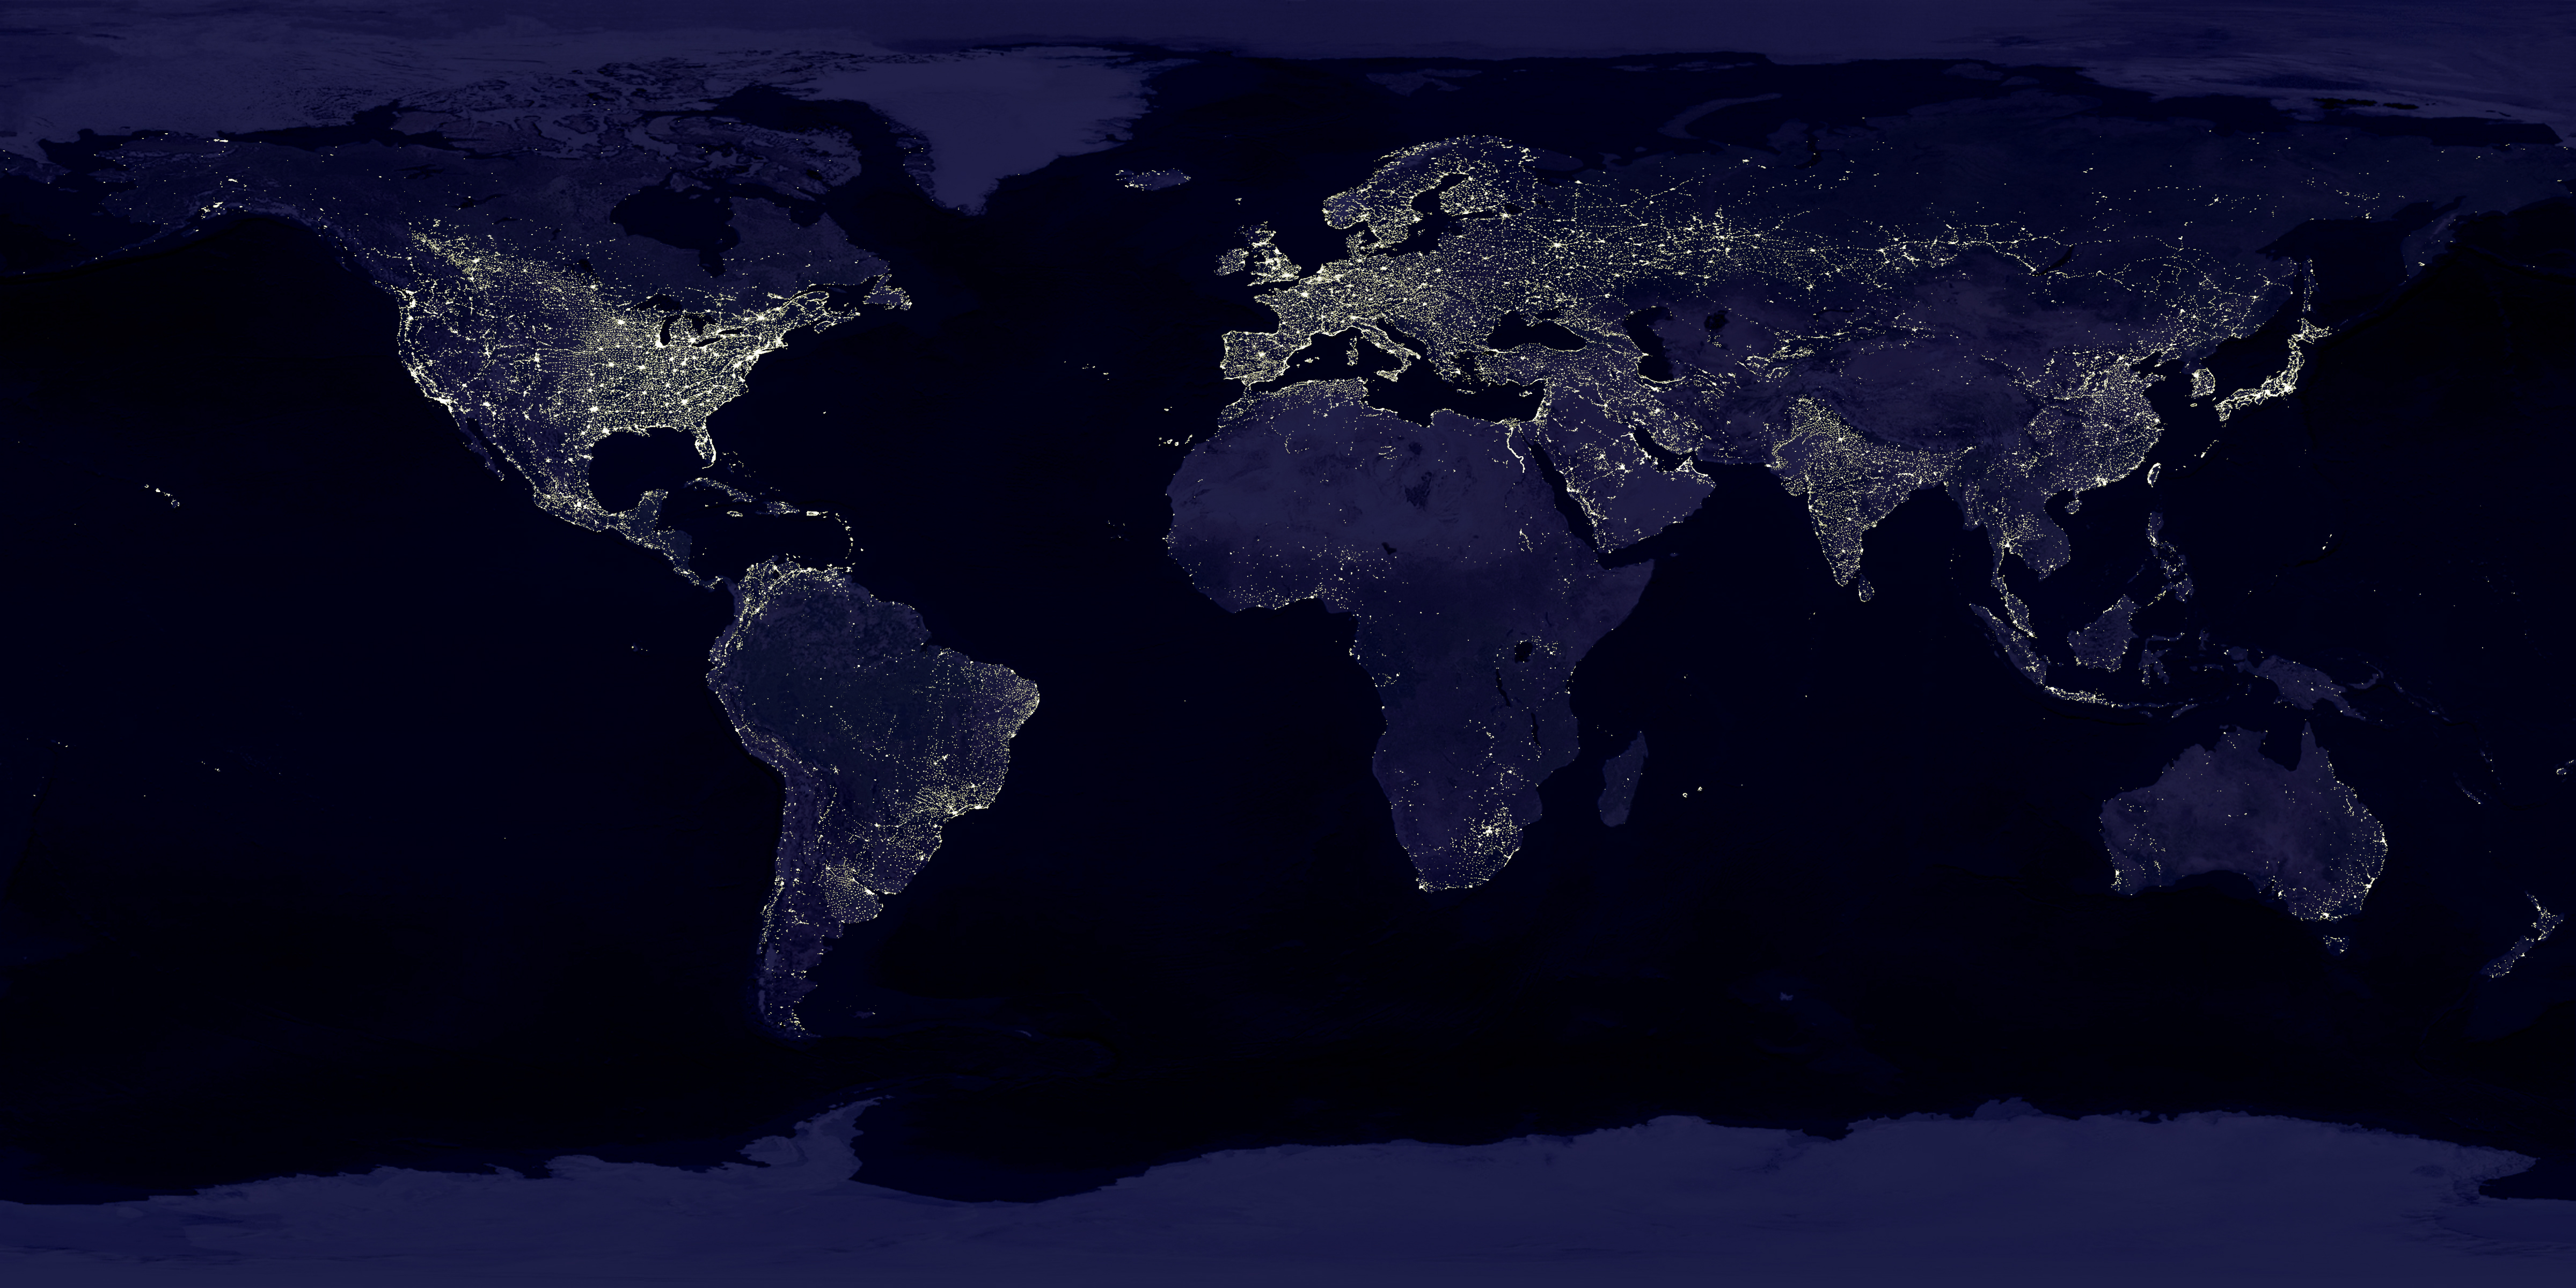 Earth s City Lights by DMSP 1994 1995 large